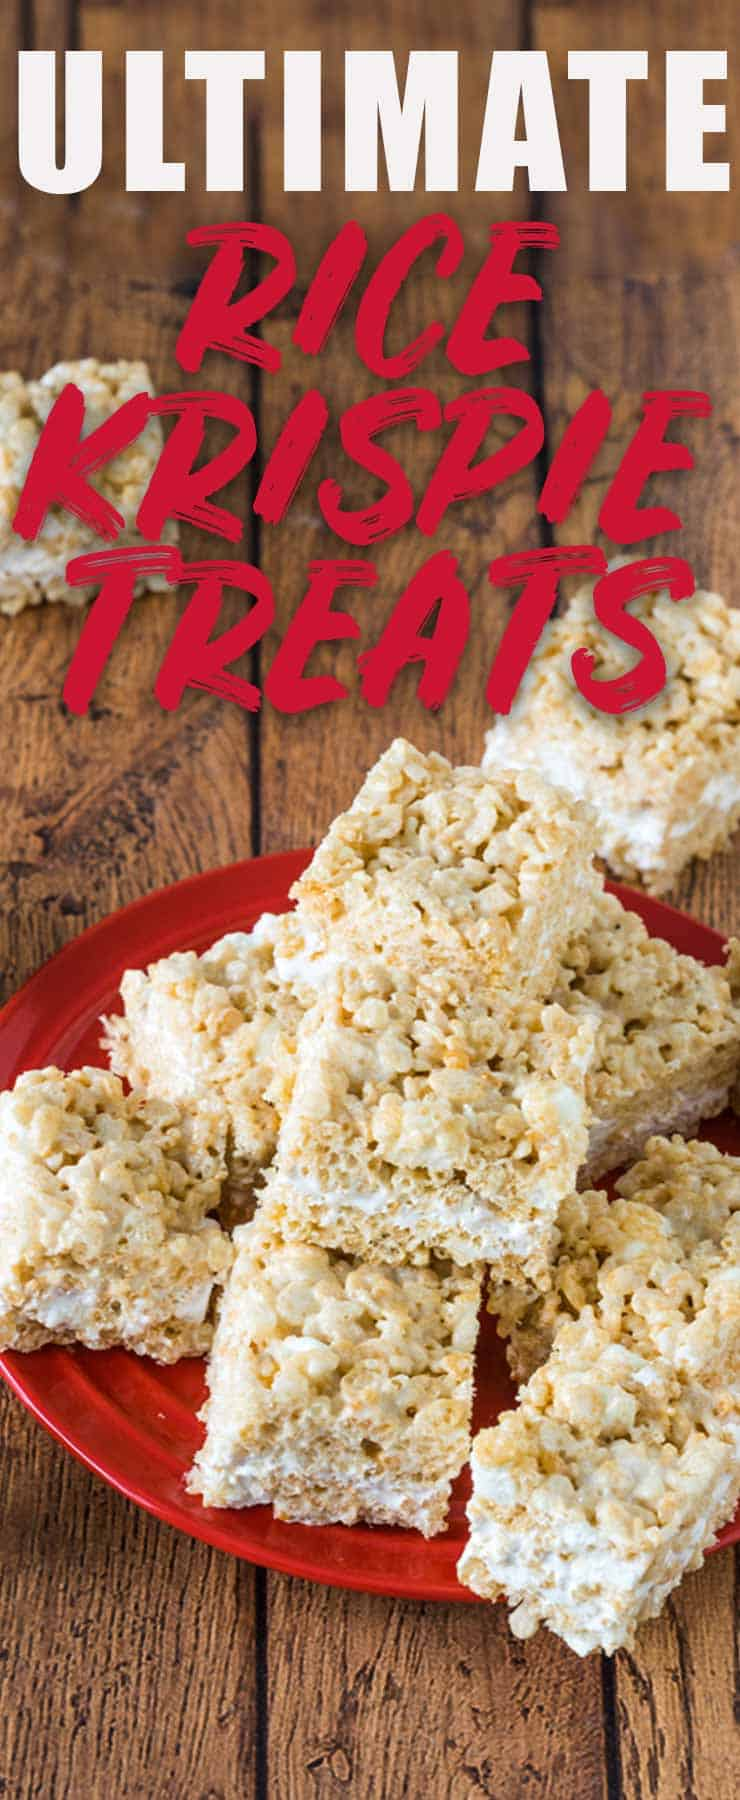 These Ultimate Rice Crispy Treats are perfectly soft and chewy with an irresistible layer of marshmallow cream that makes them far from ordinary. #ricecrispytreats #marshmallow #easydessert #nobake #marshmallowcream